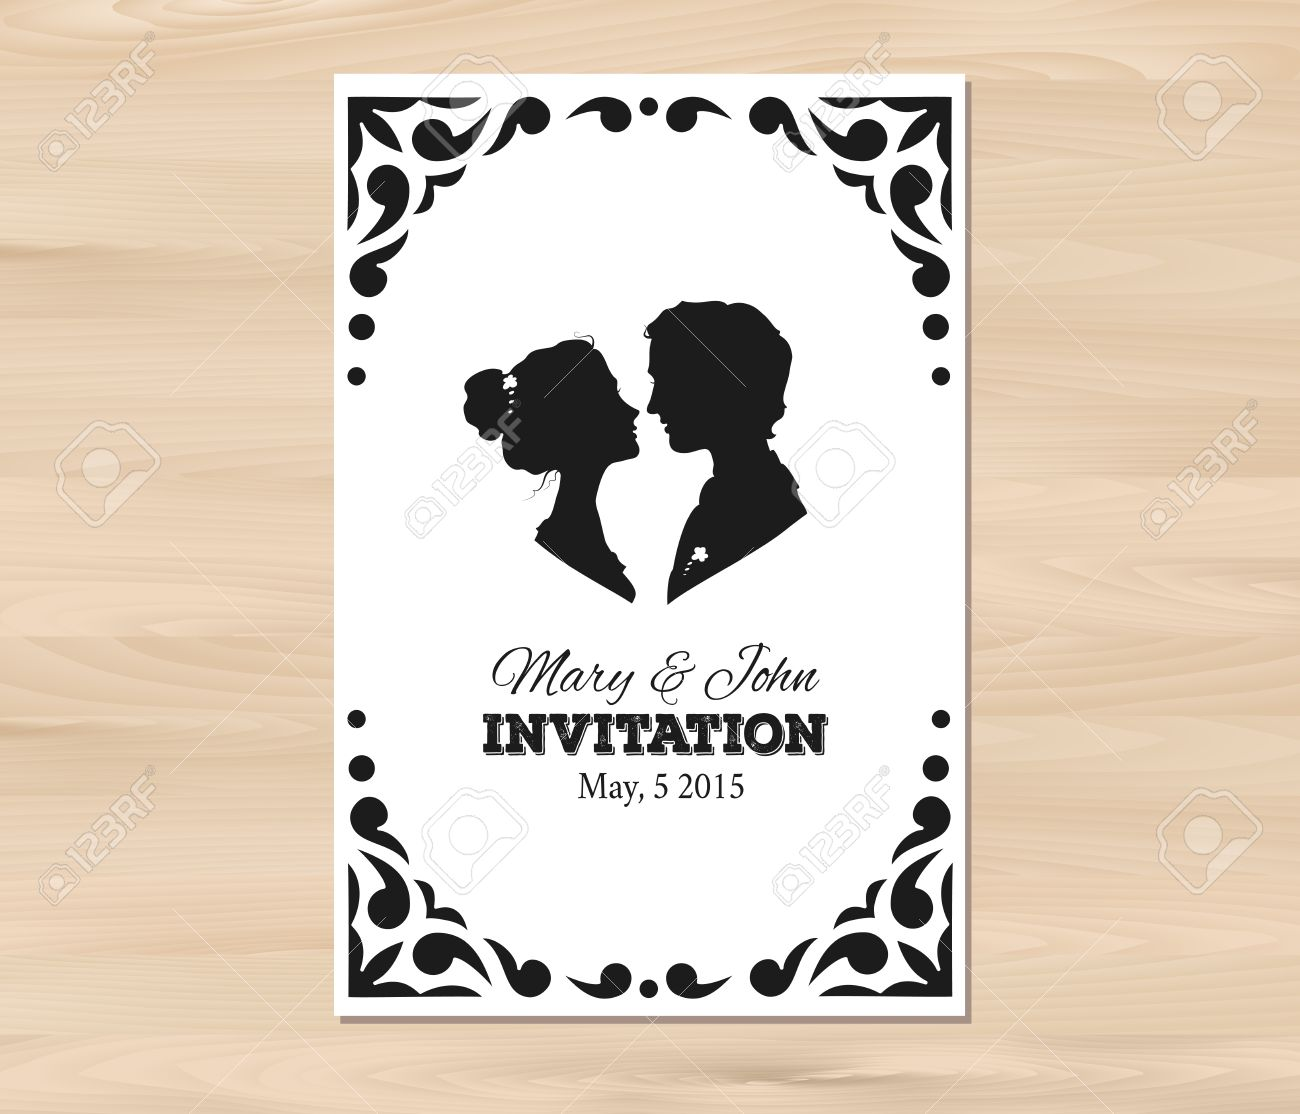 Wedding Invitation With Profile Silhouettes Of Man And Woman ...